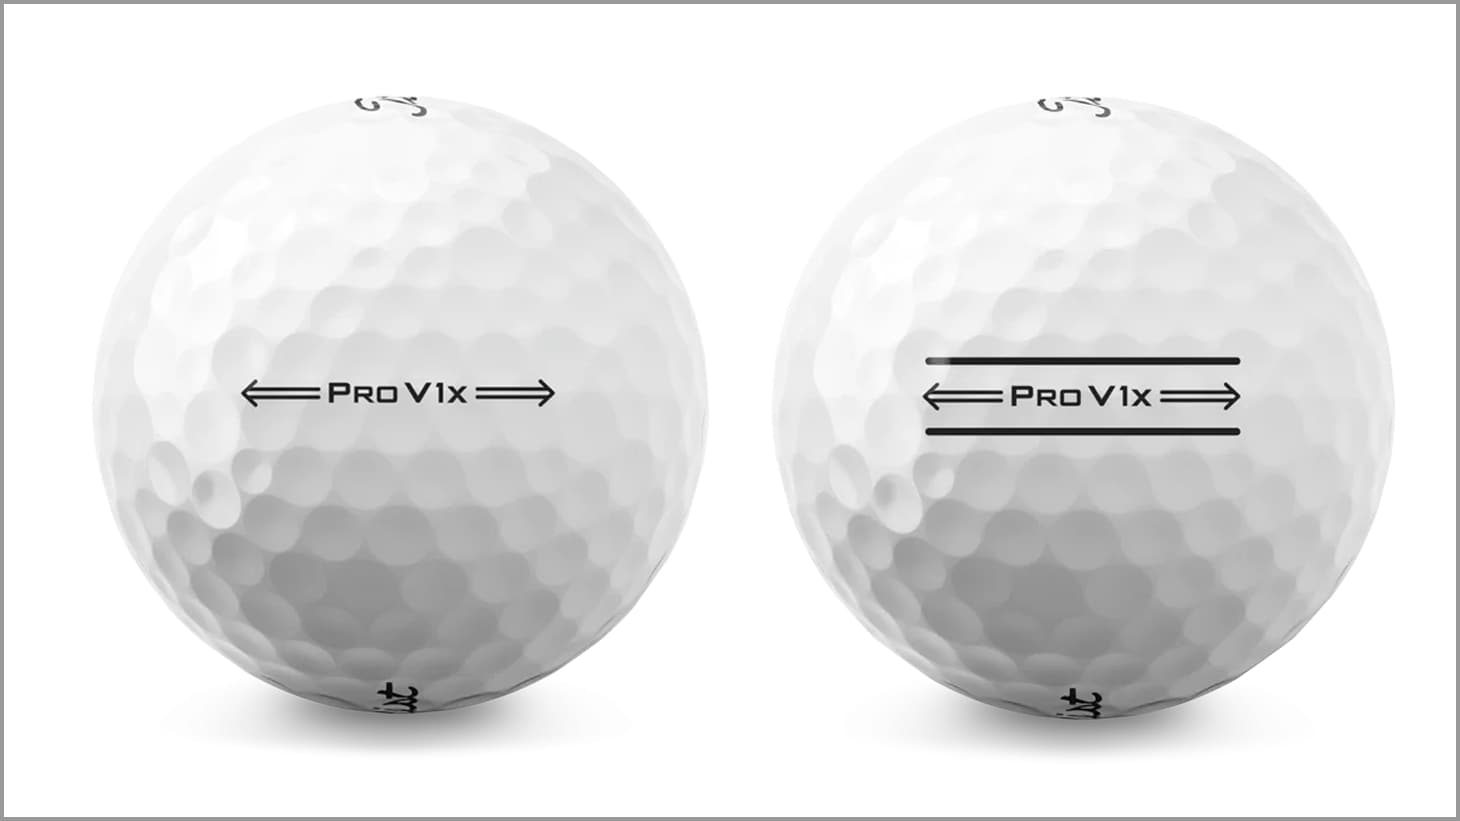 ...and 2021 Pro V1x golf balls.